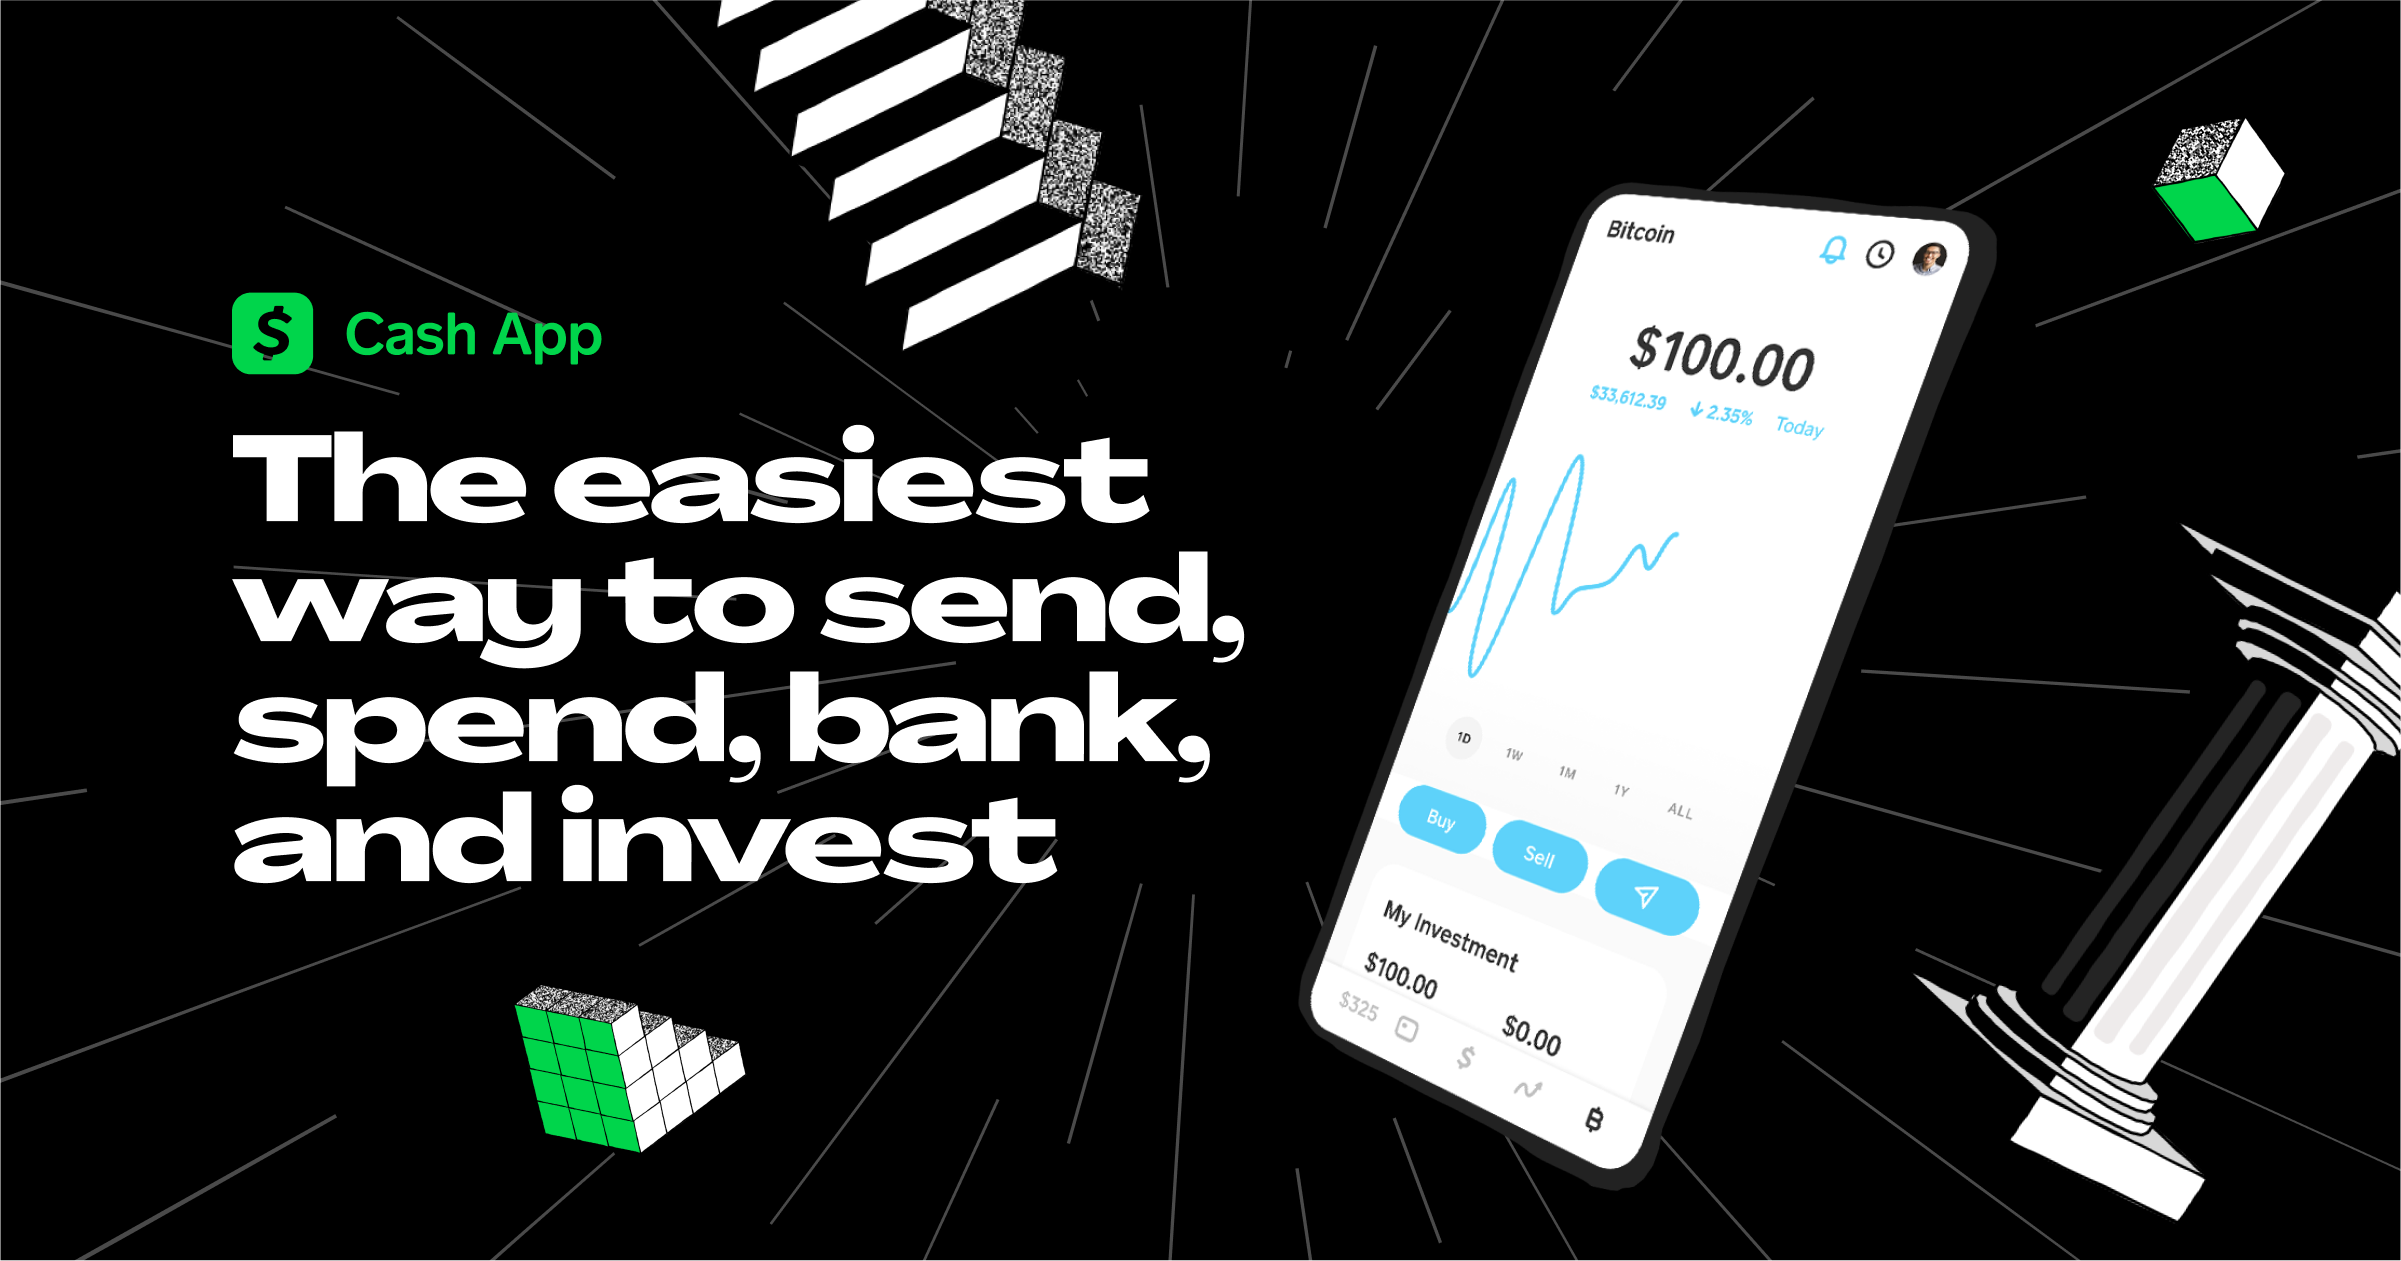 Cash <b>App</b> - The easiest way to send, spend, bank, and invest